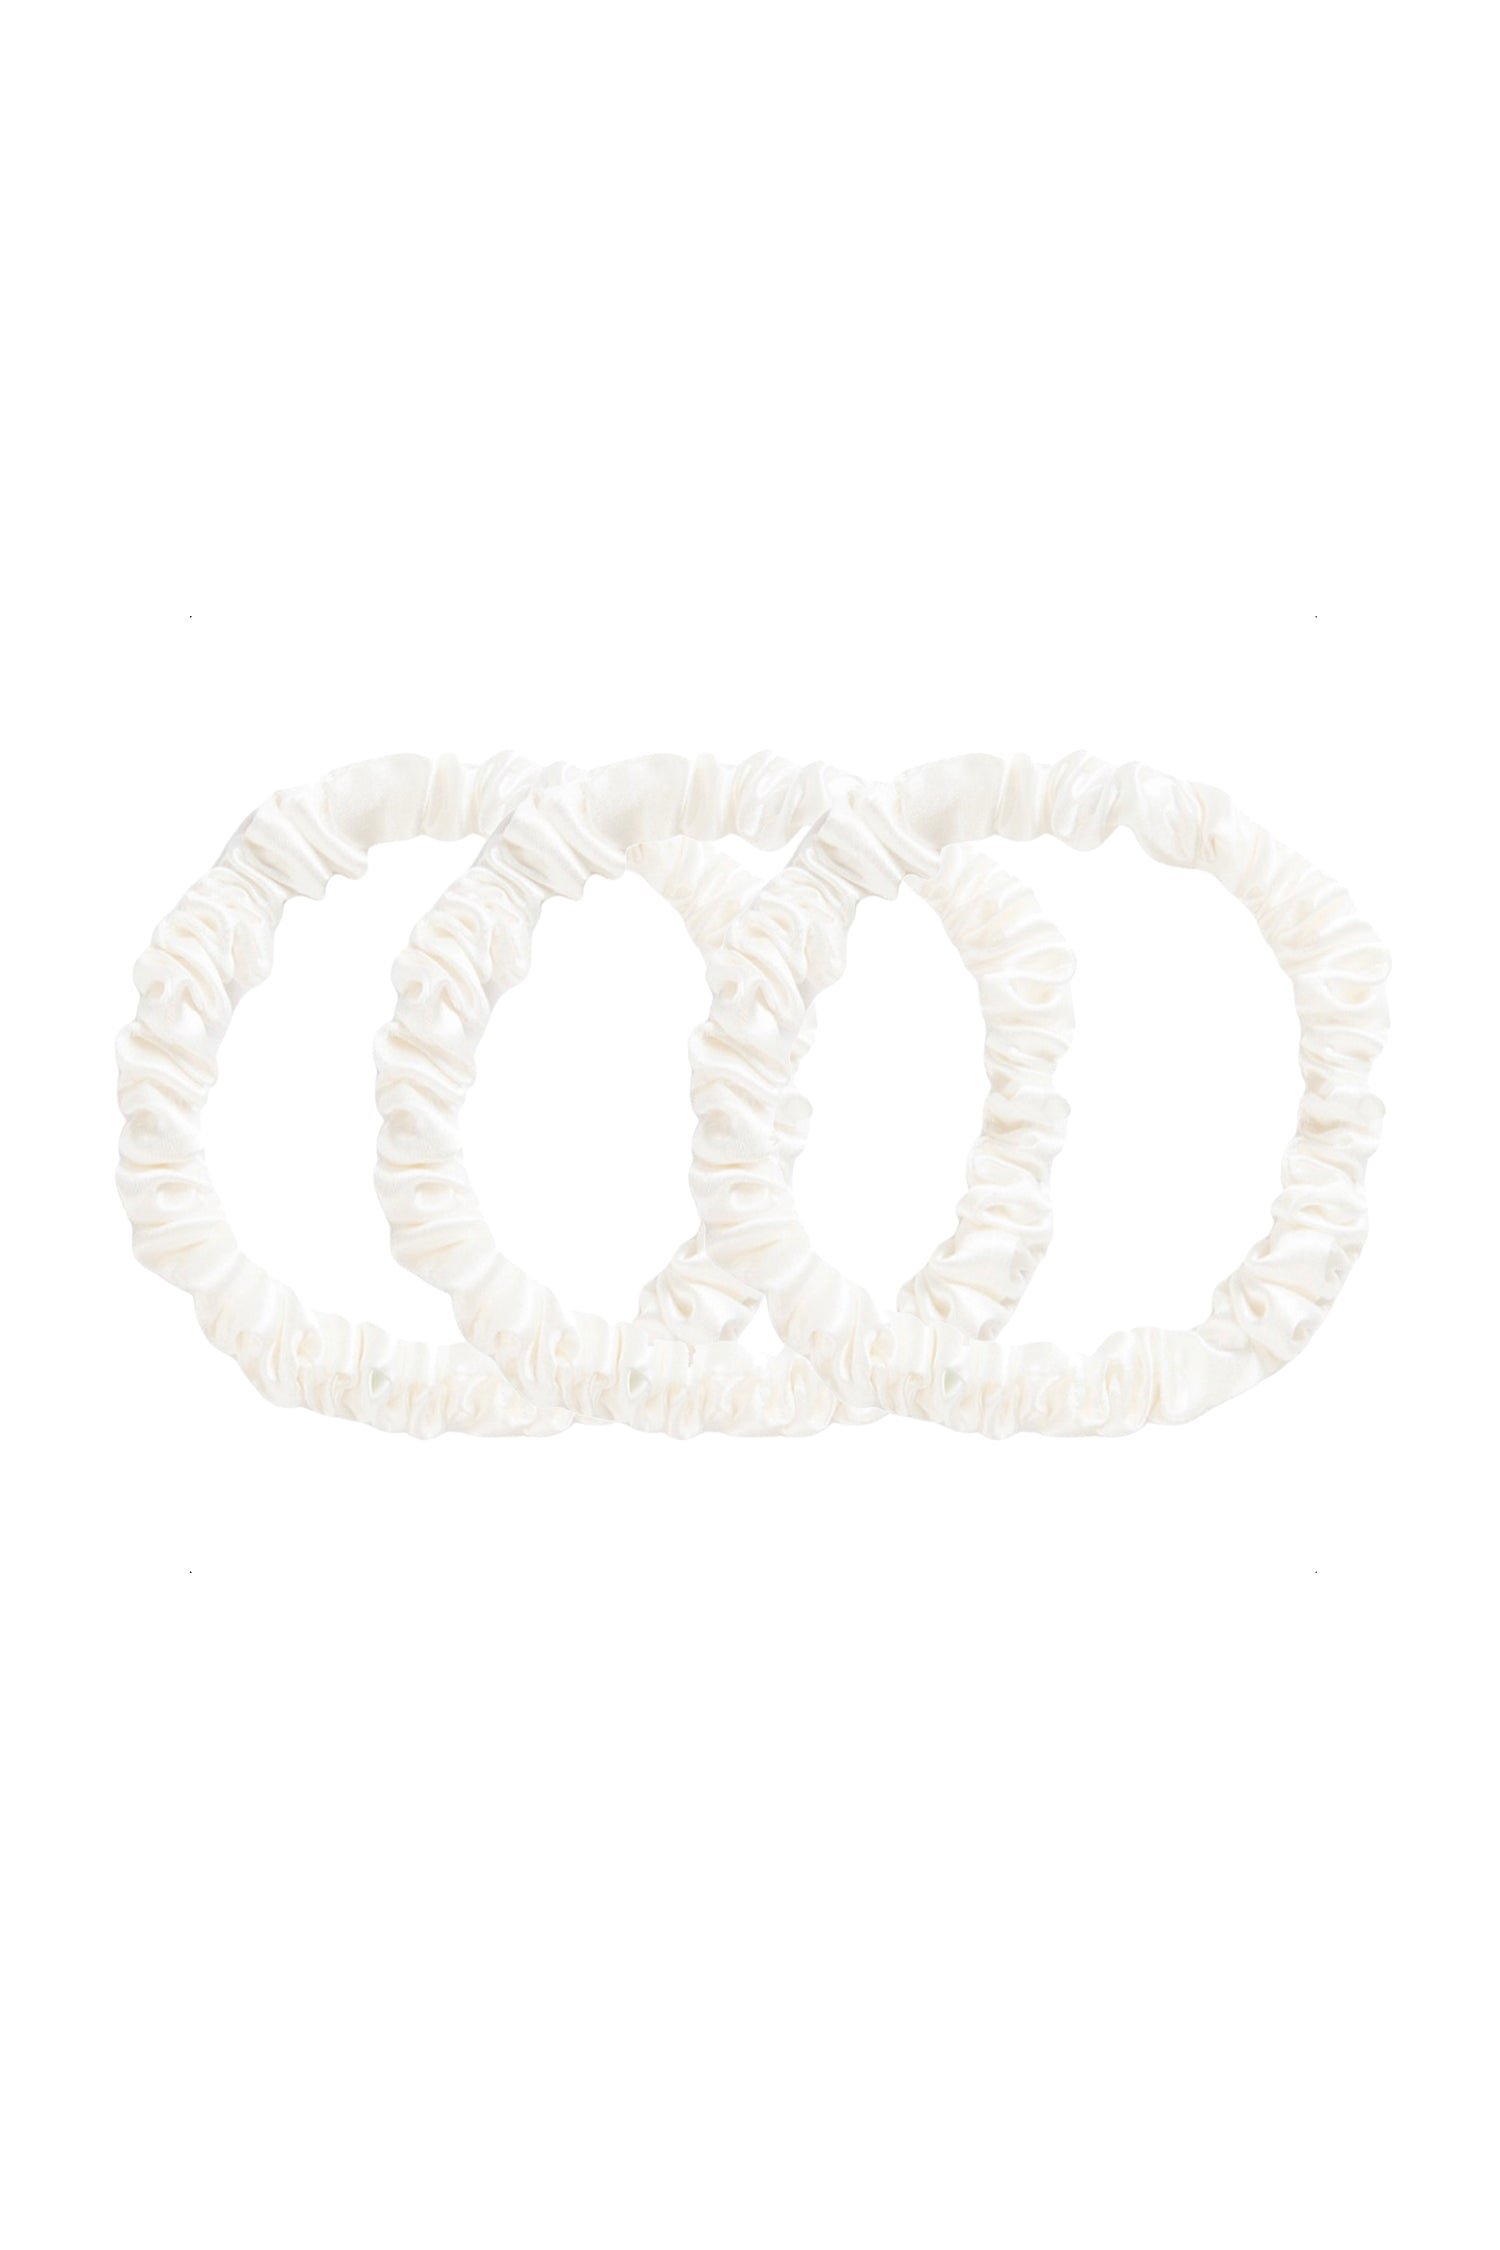 SMALL Silk Hair Ties - Pearl White